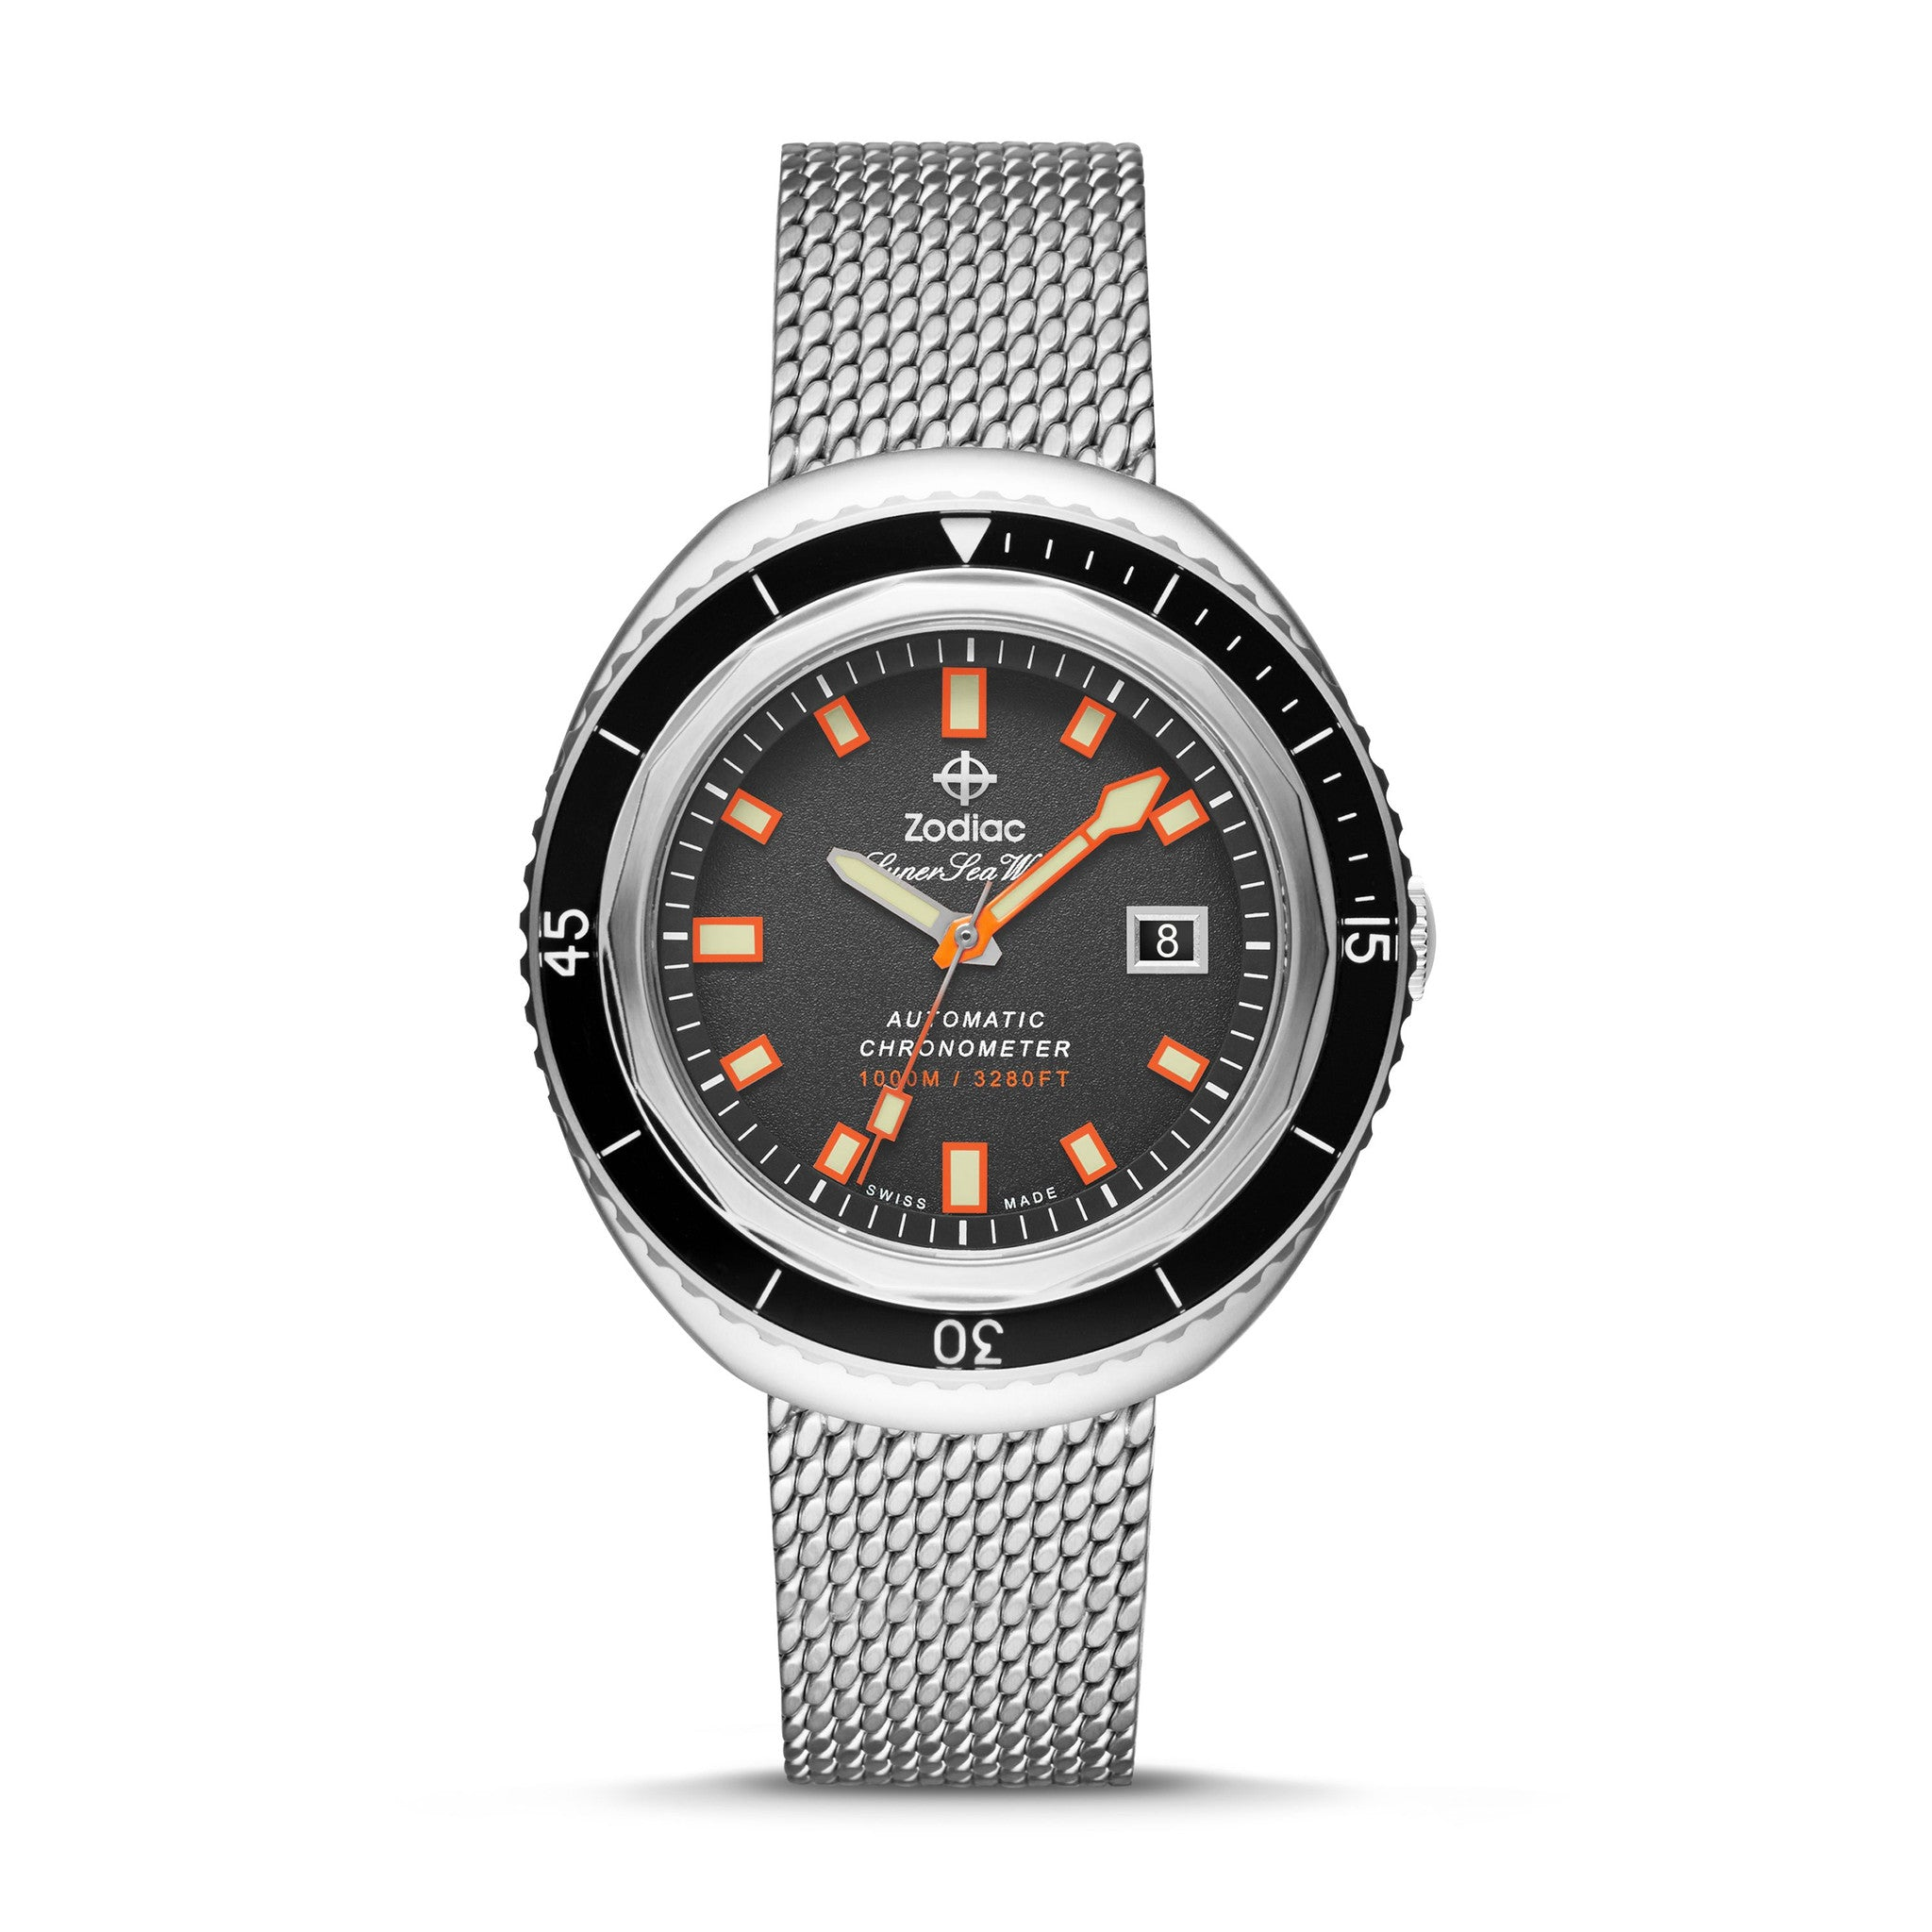 LIMITED EDITION SUPER SEA WOLF 68 AUTOMATIC STAINLESS STEEL WATCH